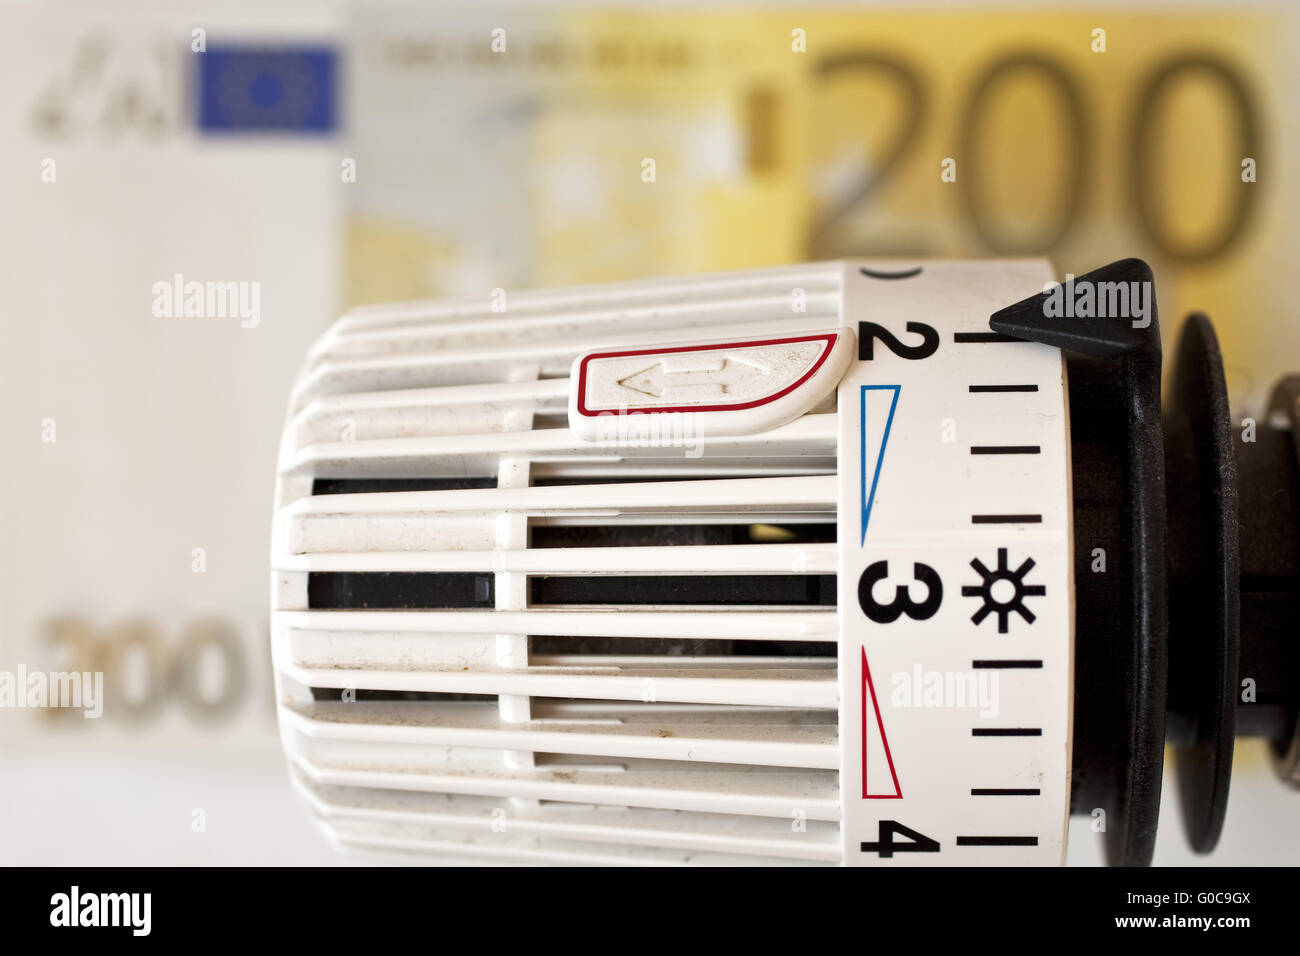 heating thermostat and Euro bills, heating coasts - Stock Image